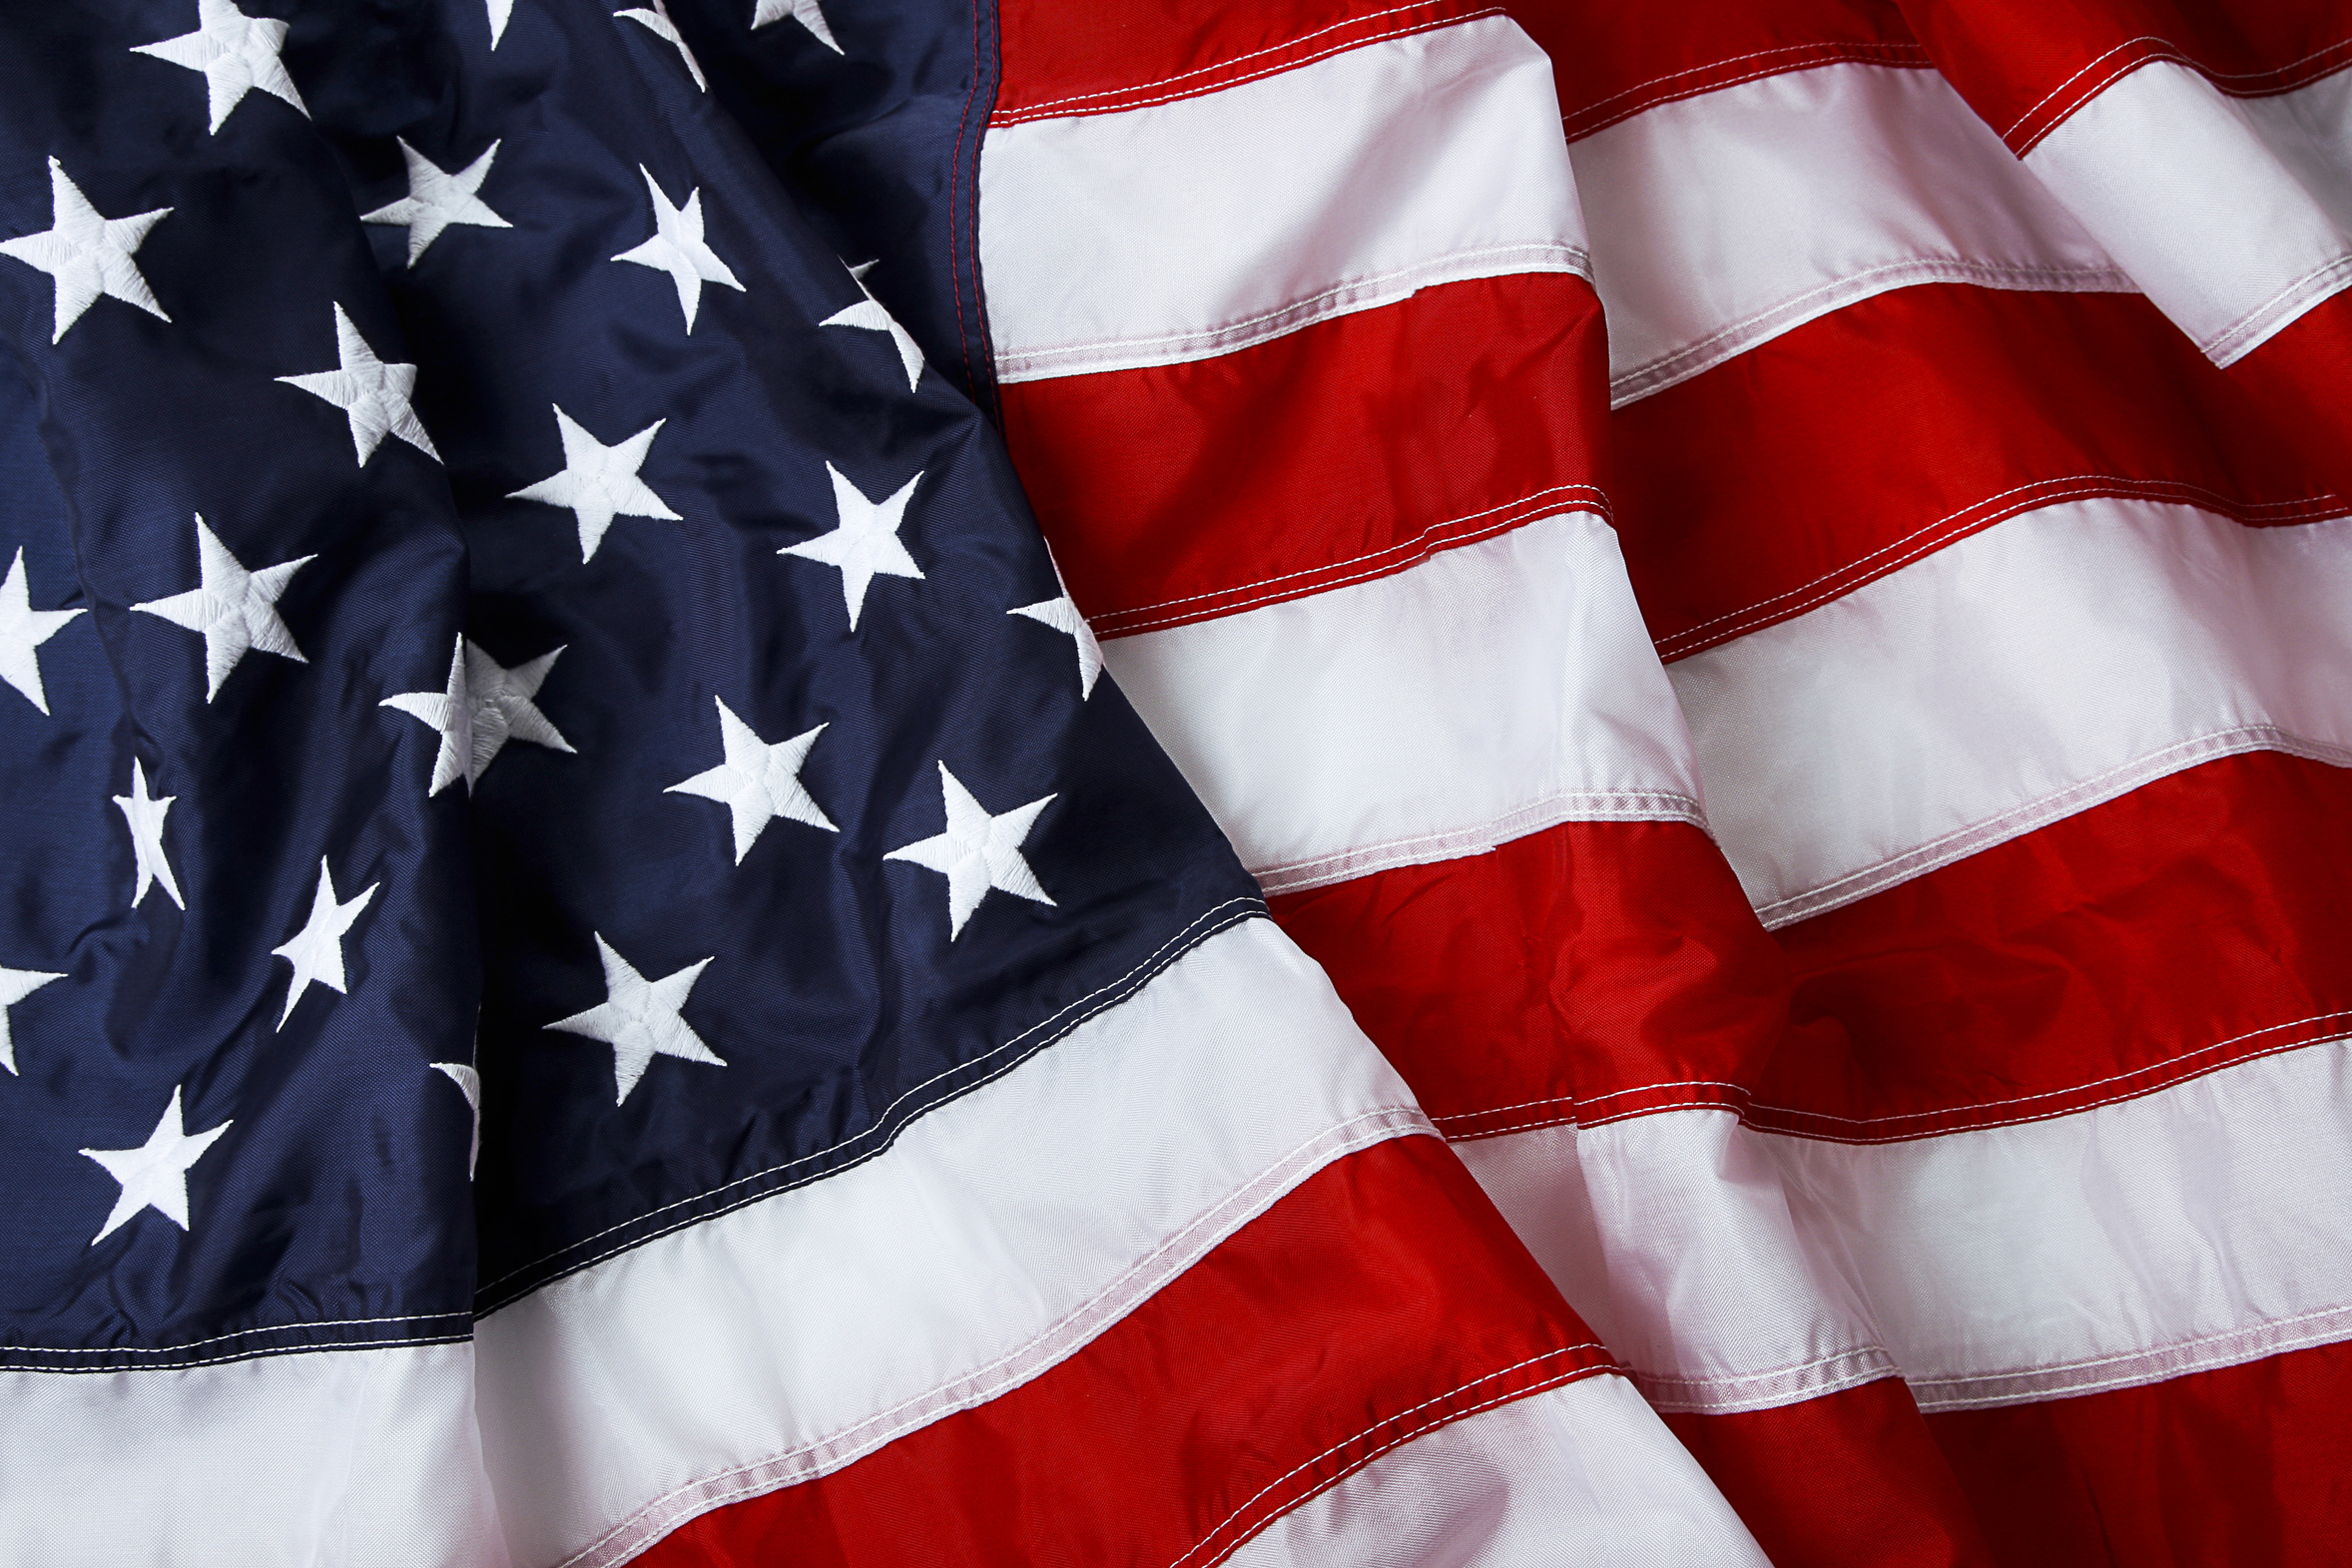 We support our troops - Each day we honor our armed forces, veterans, police officers and firefighters by offering your meal at a discounted price when your I.D is present.